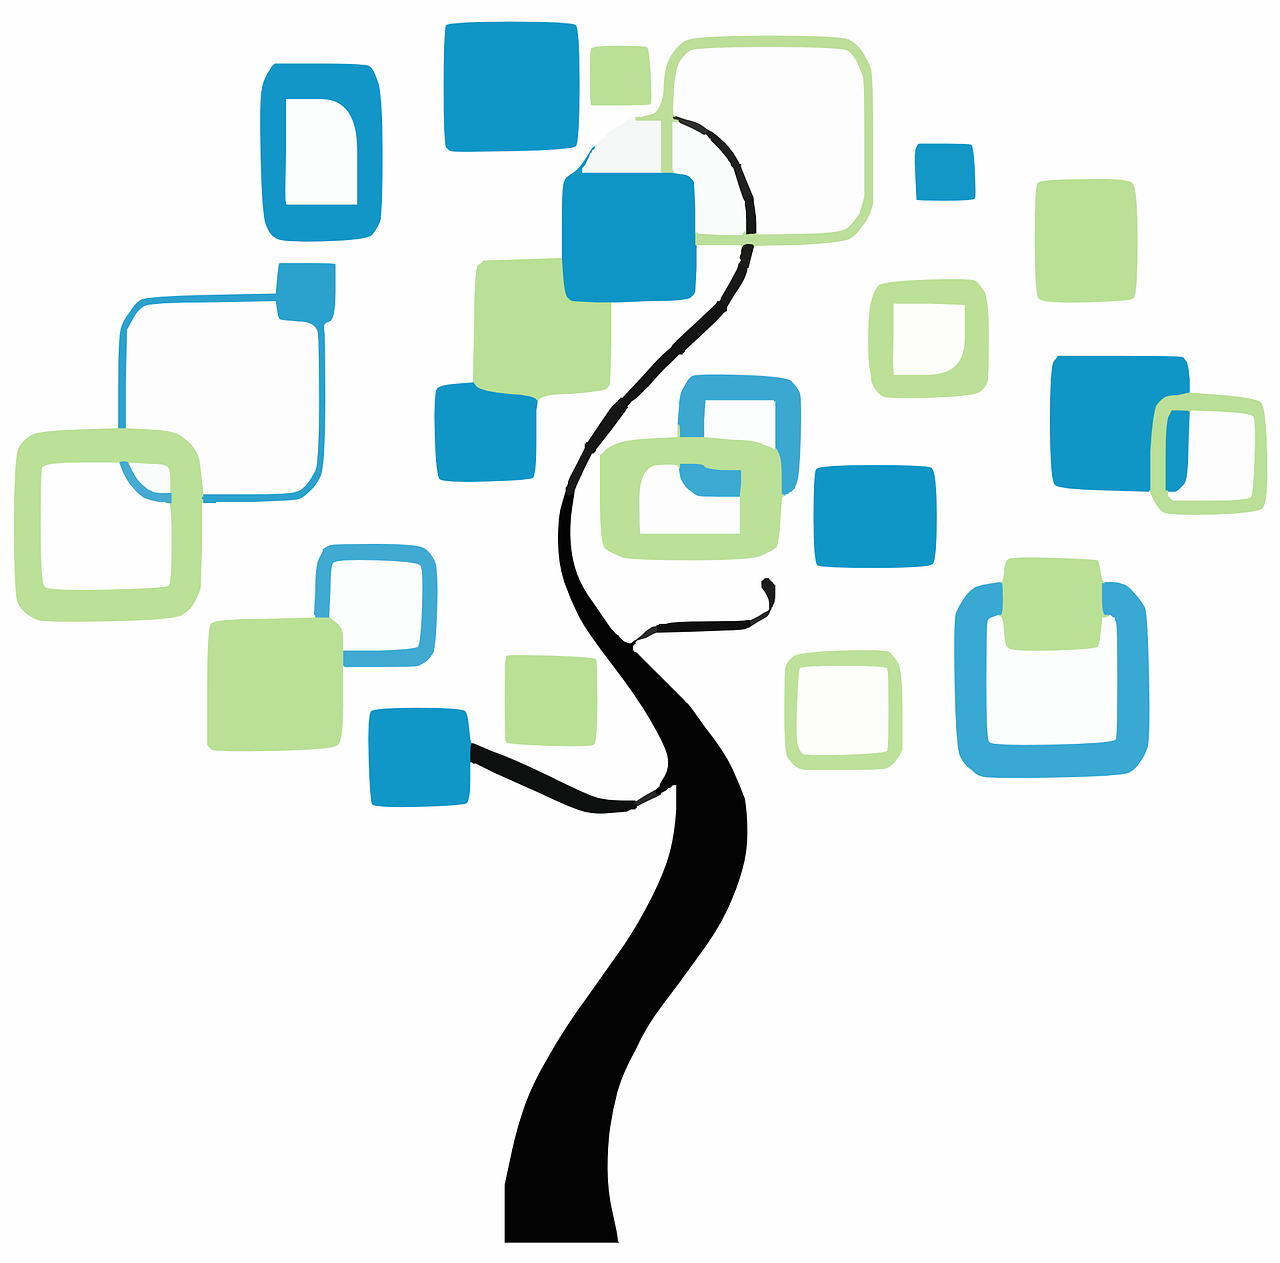 Community Based Projects - Family Trees